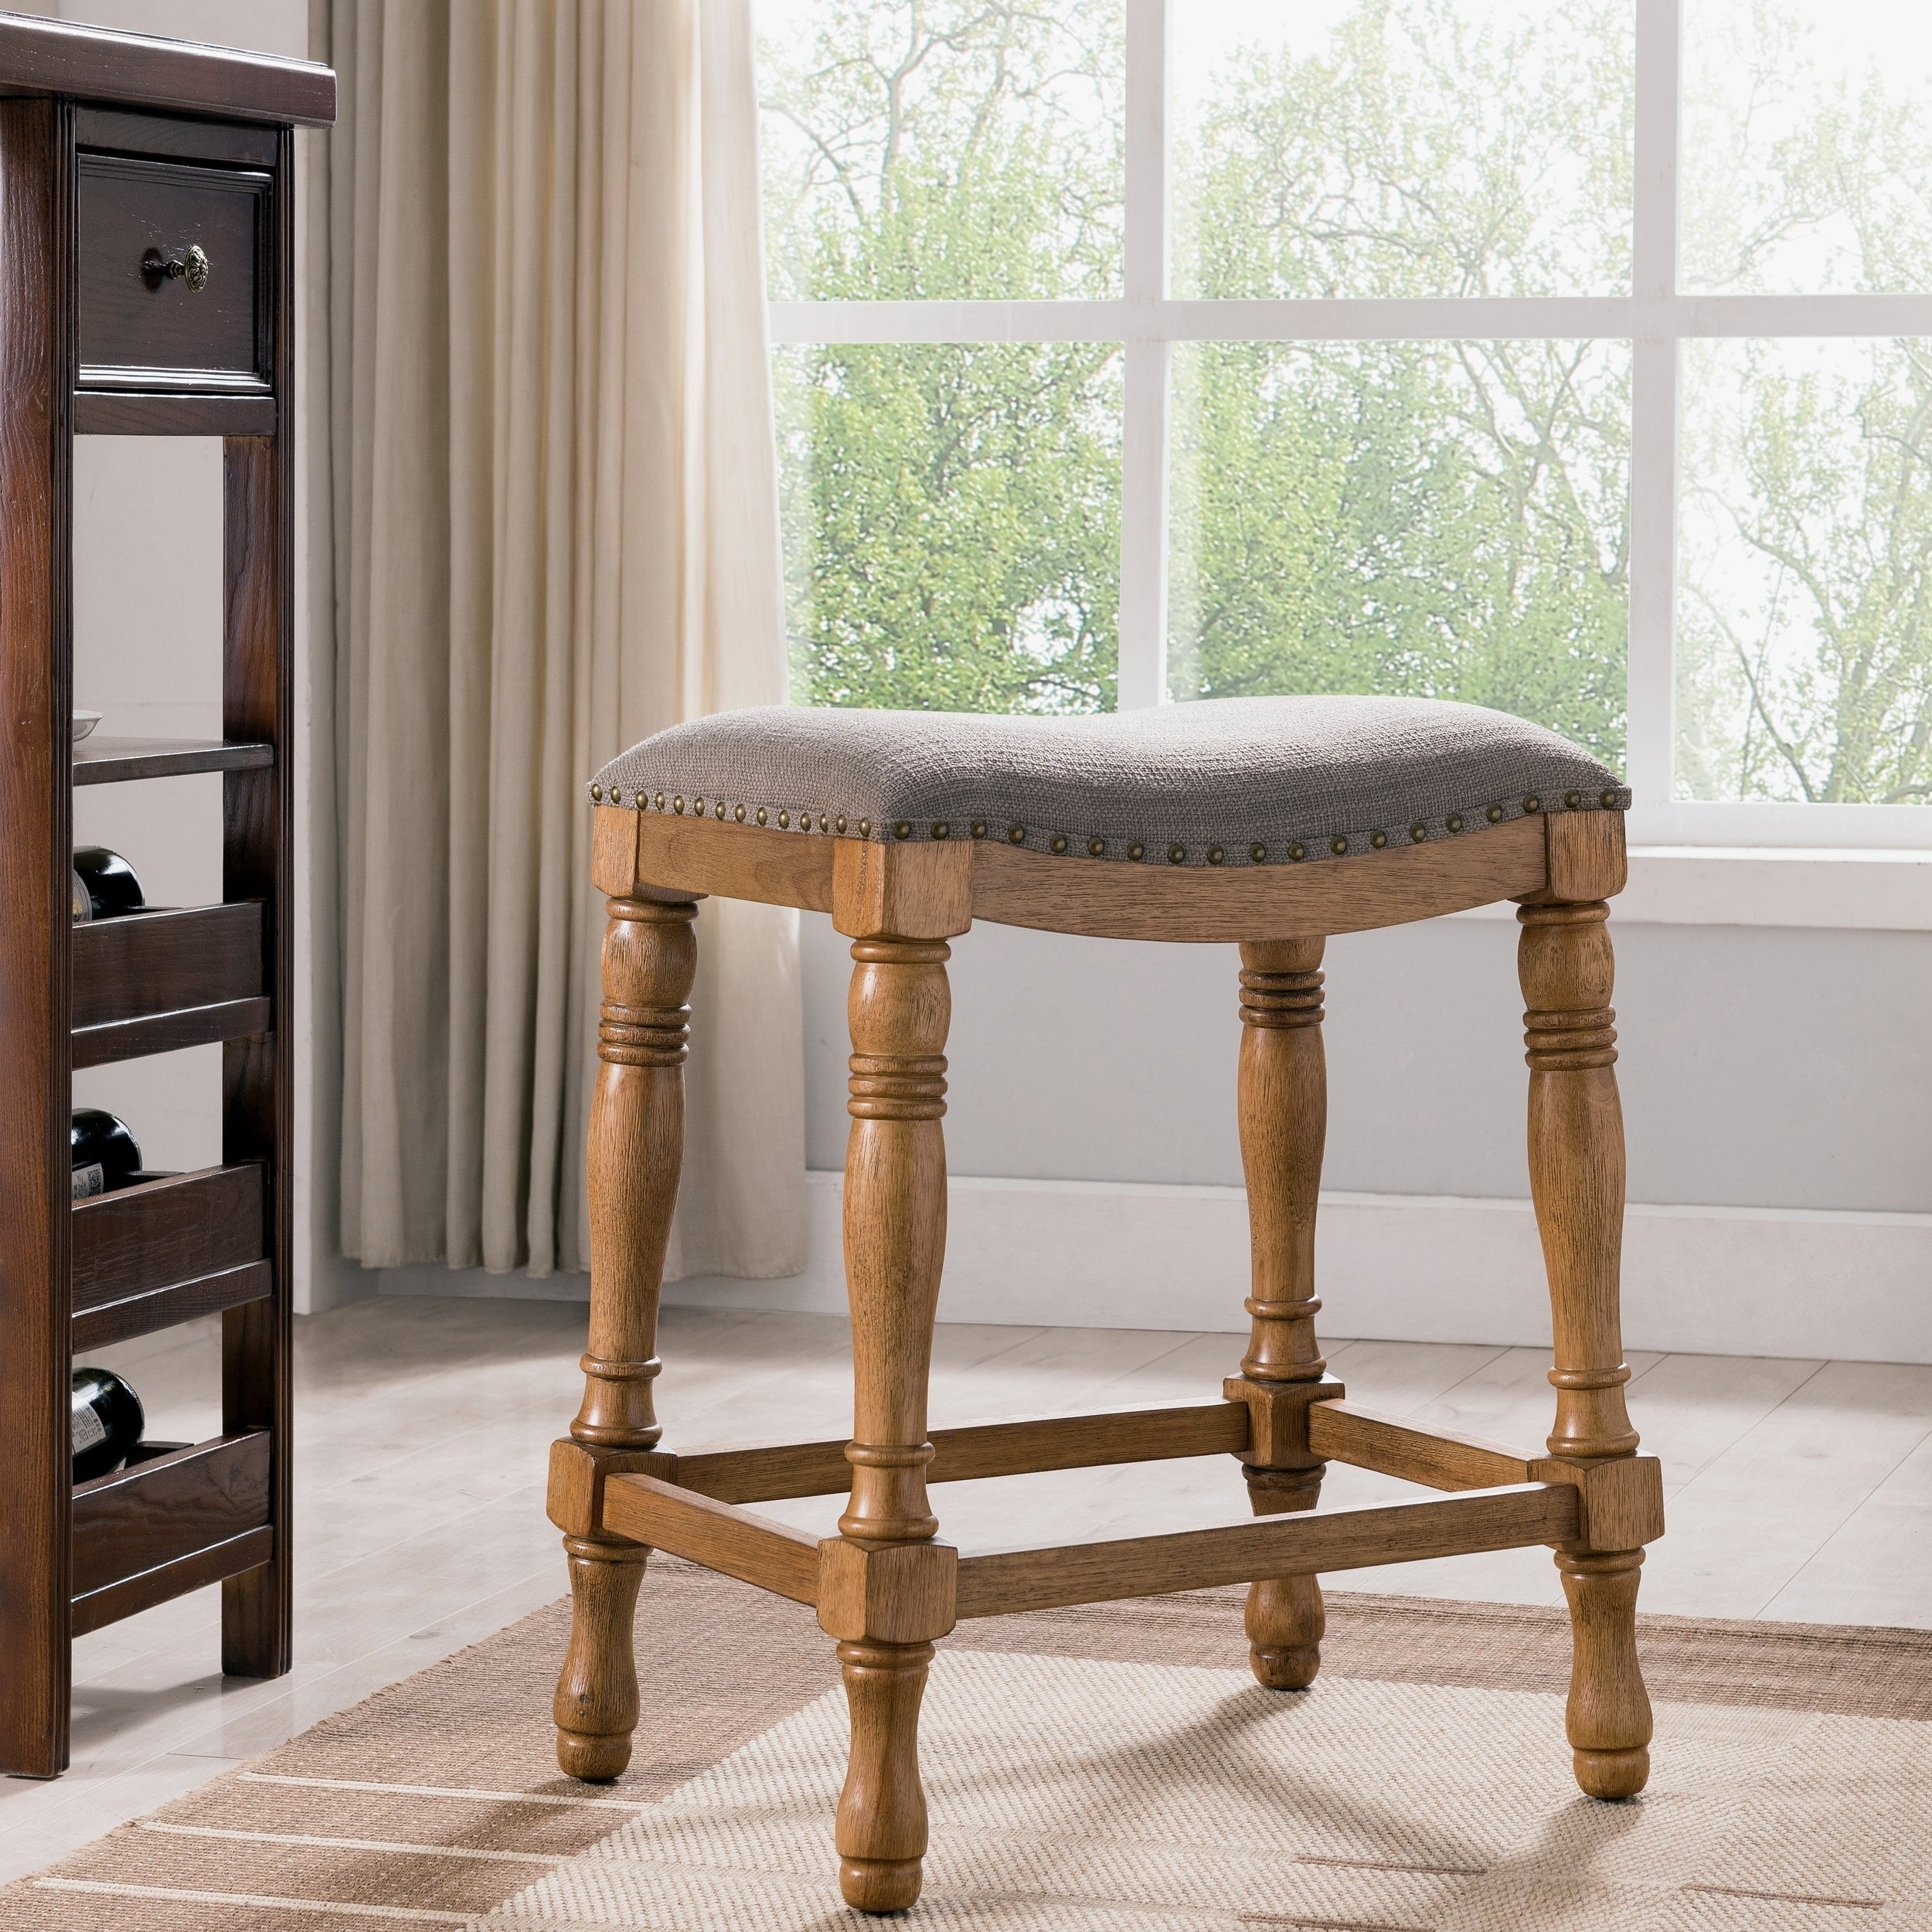 Magnificent Rustic Wood And Linen 25 Saddle Seat Counter Stool Pdpeps Interior Chair Design Pdpepsorg